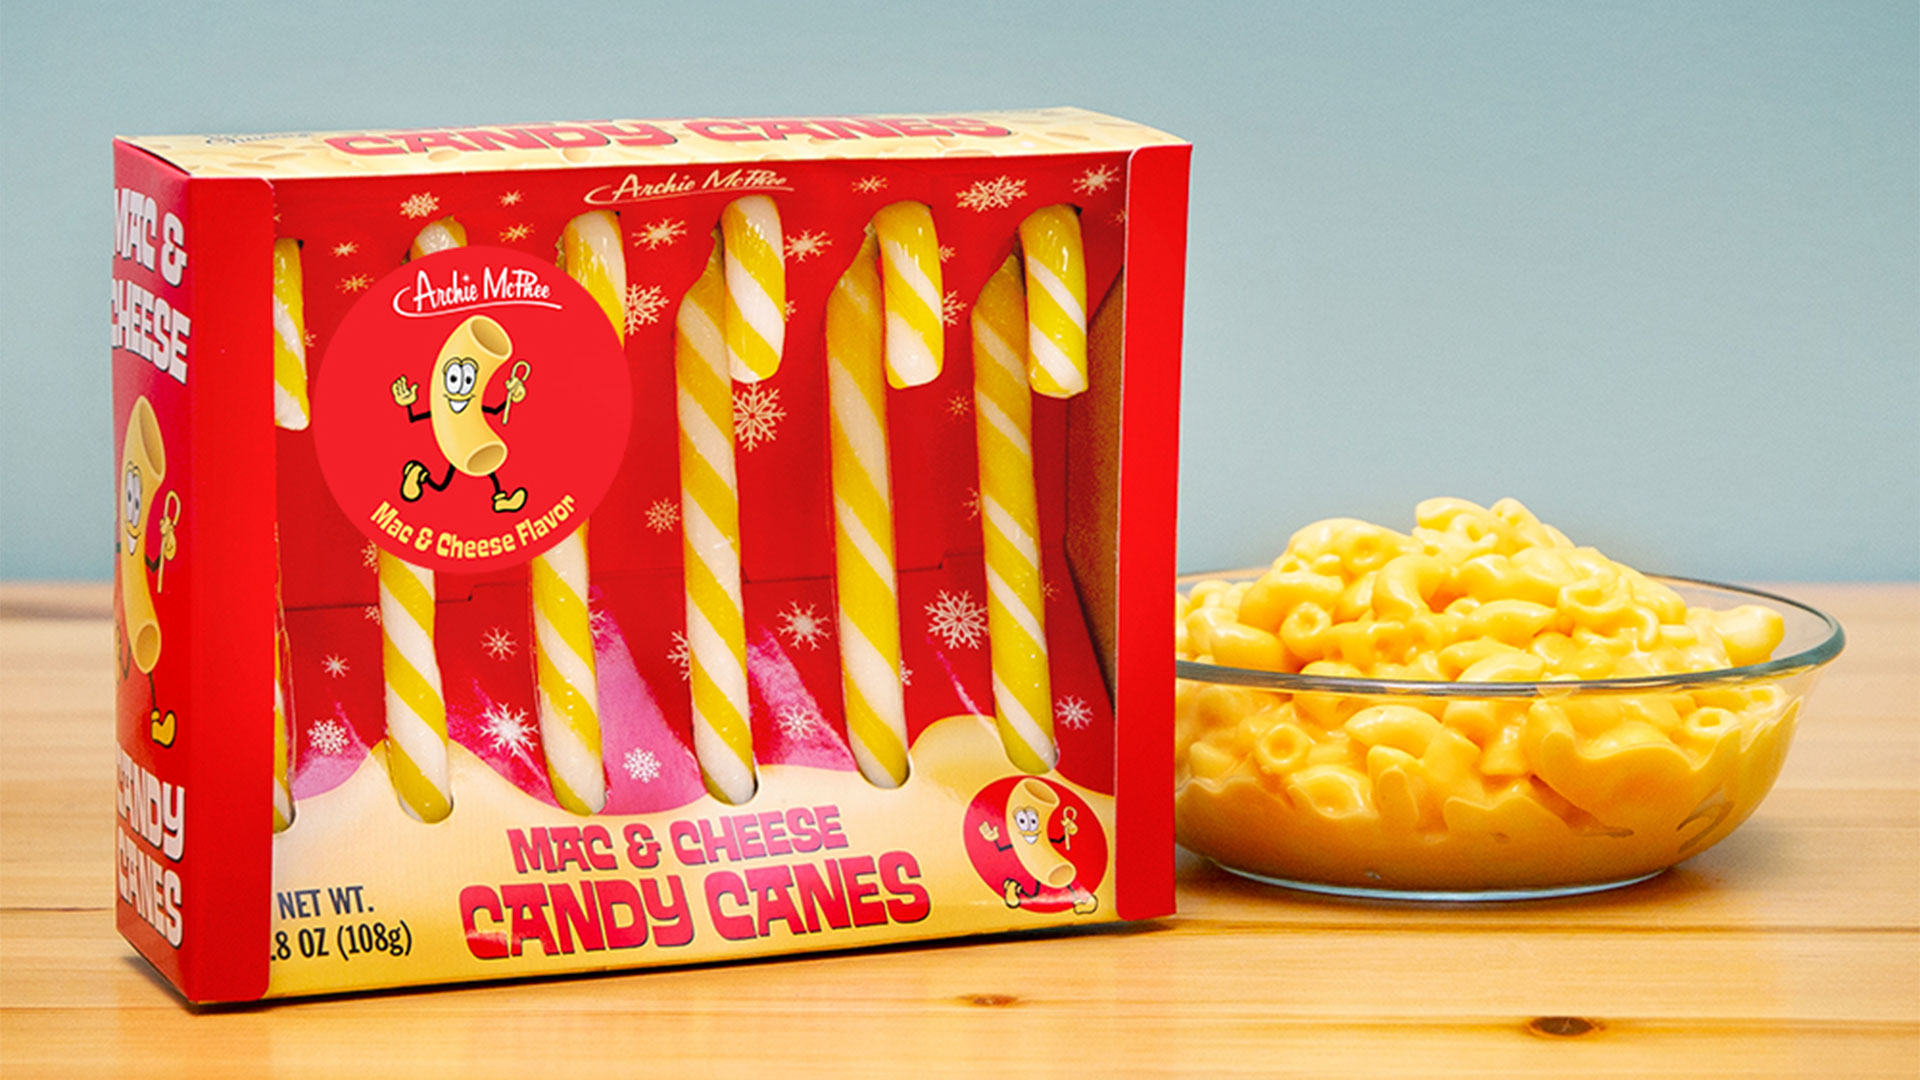 Macaroni and Cheese Candy Canes